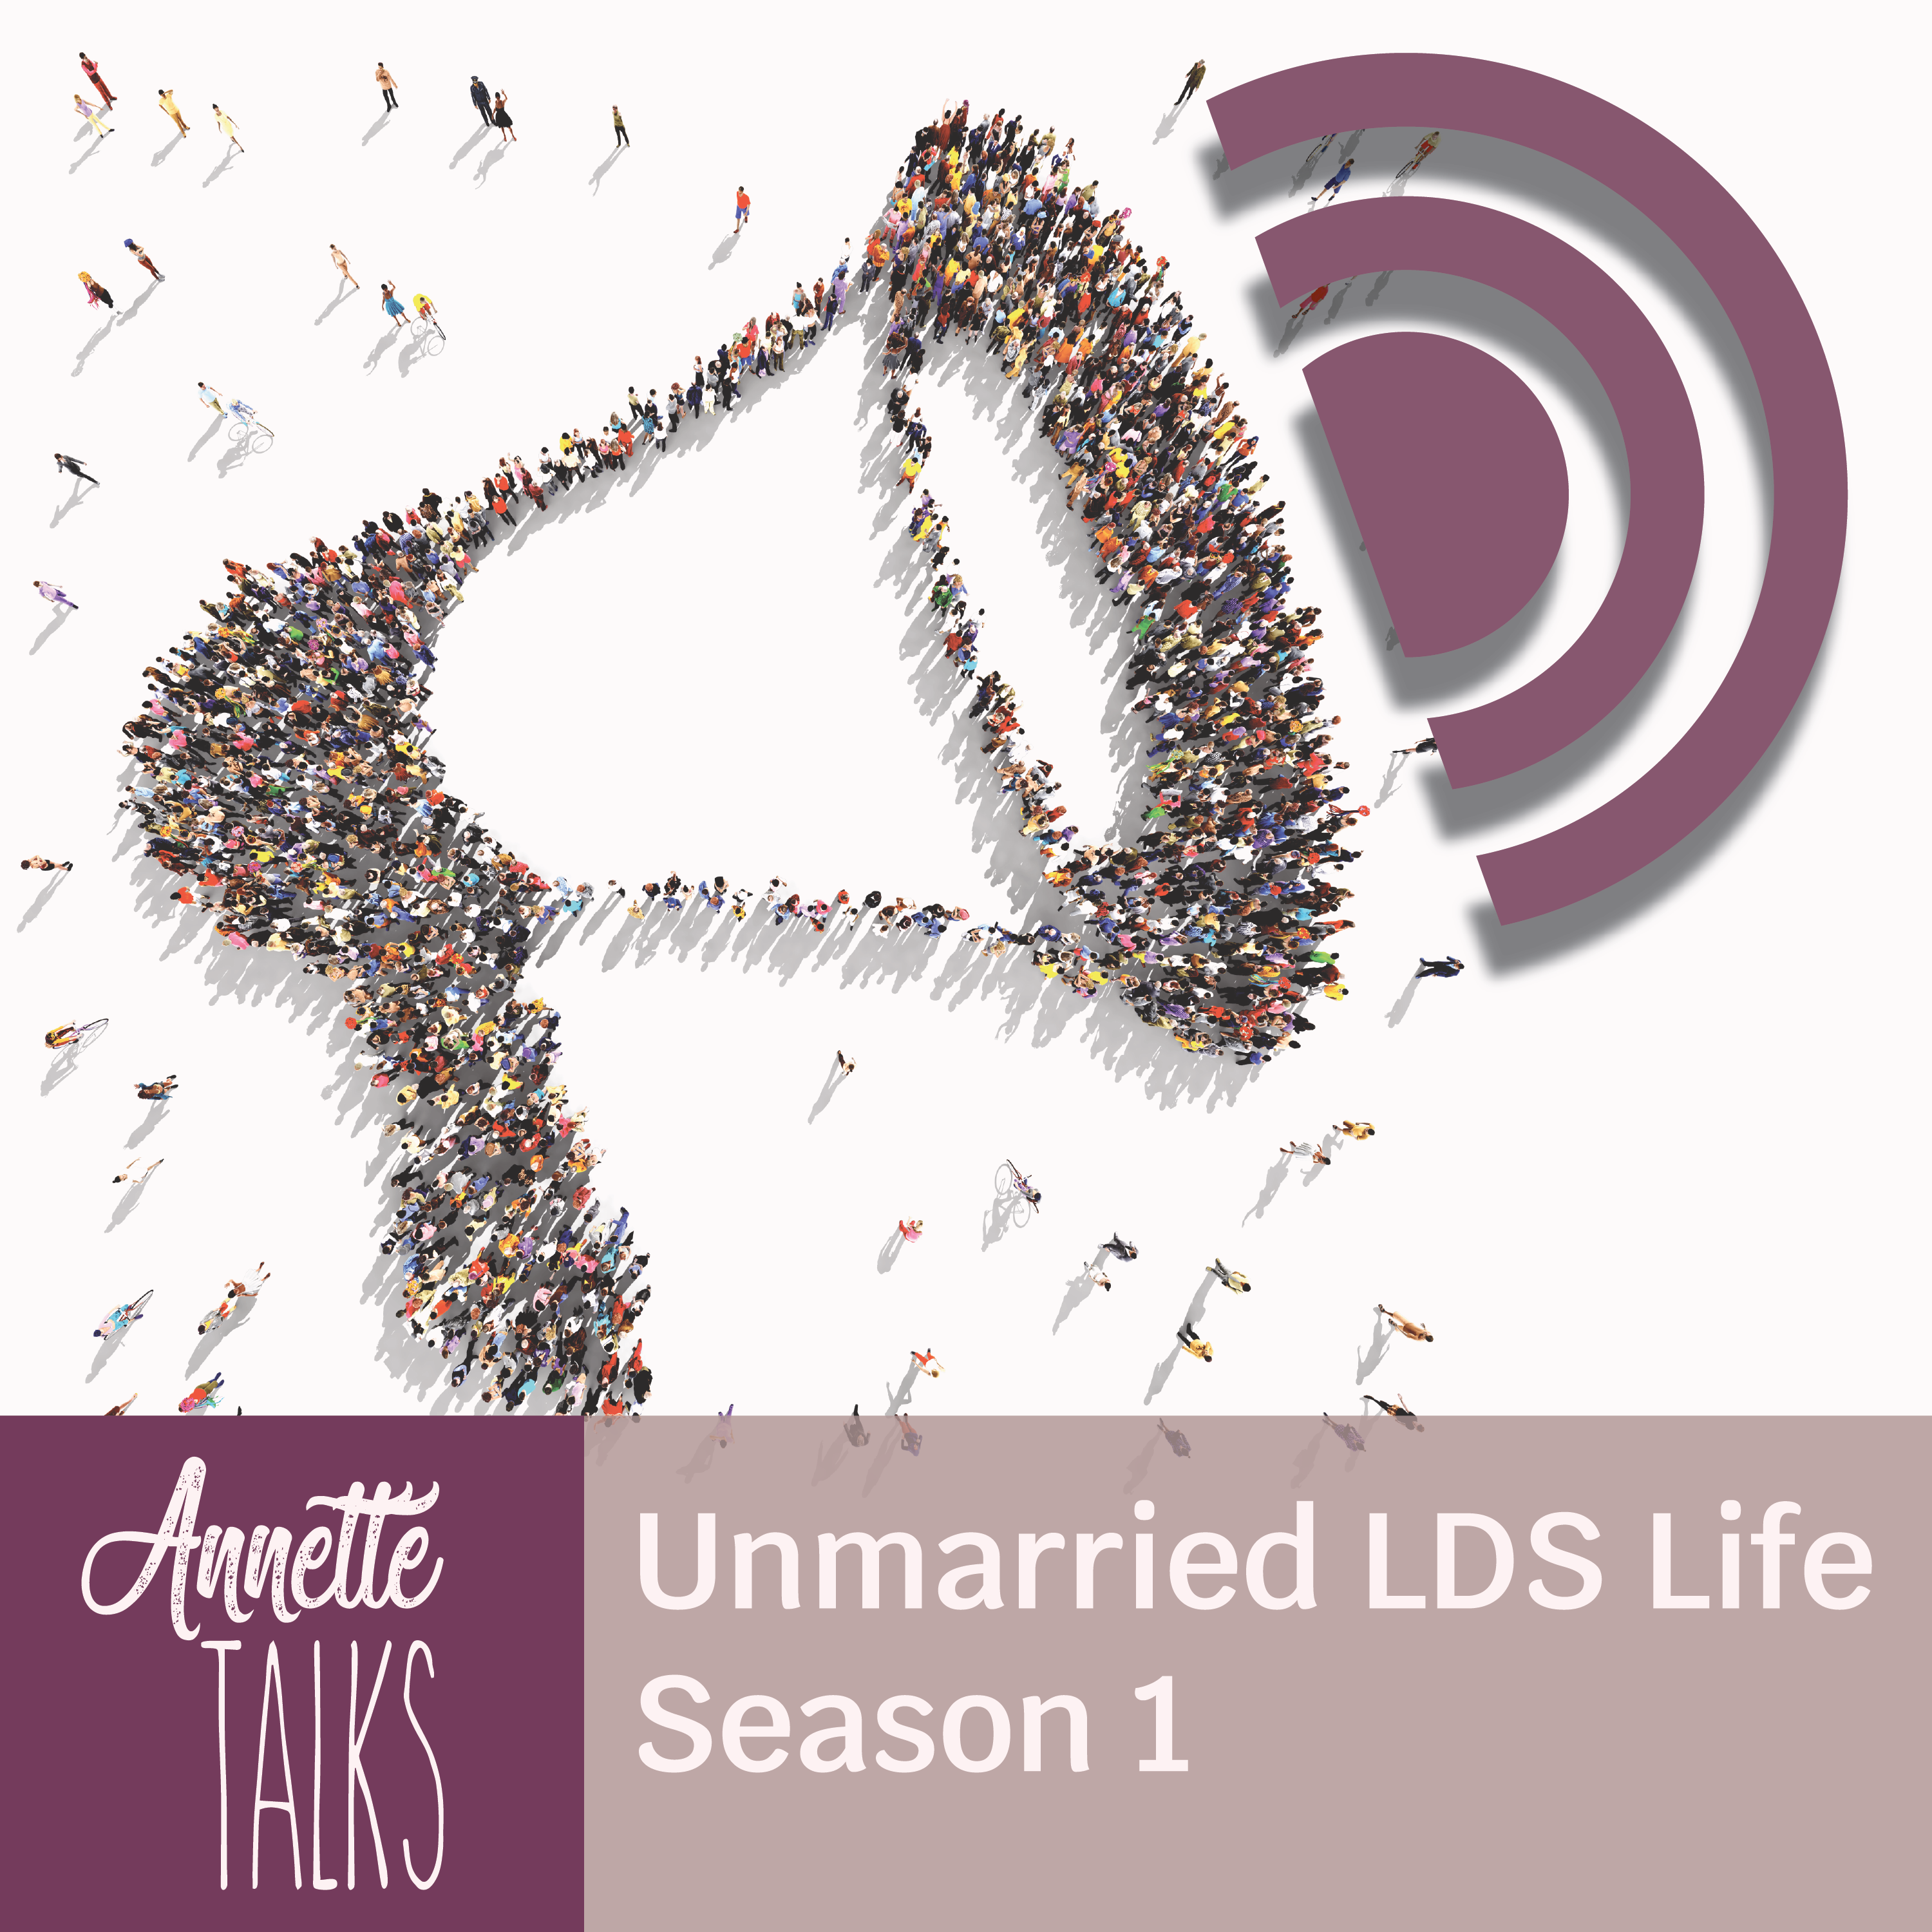 LDS Unmarried Life show art